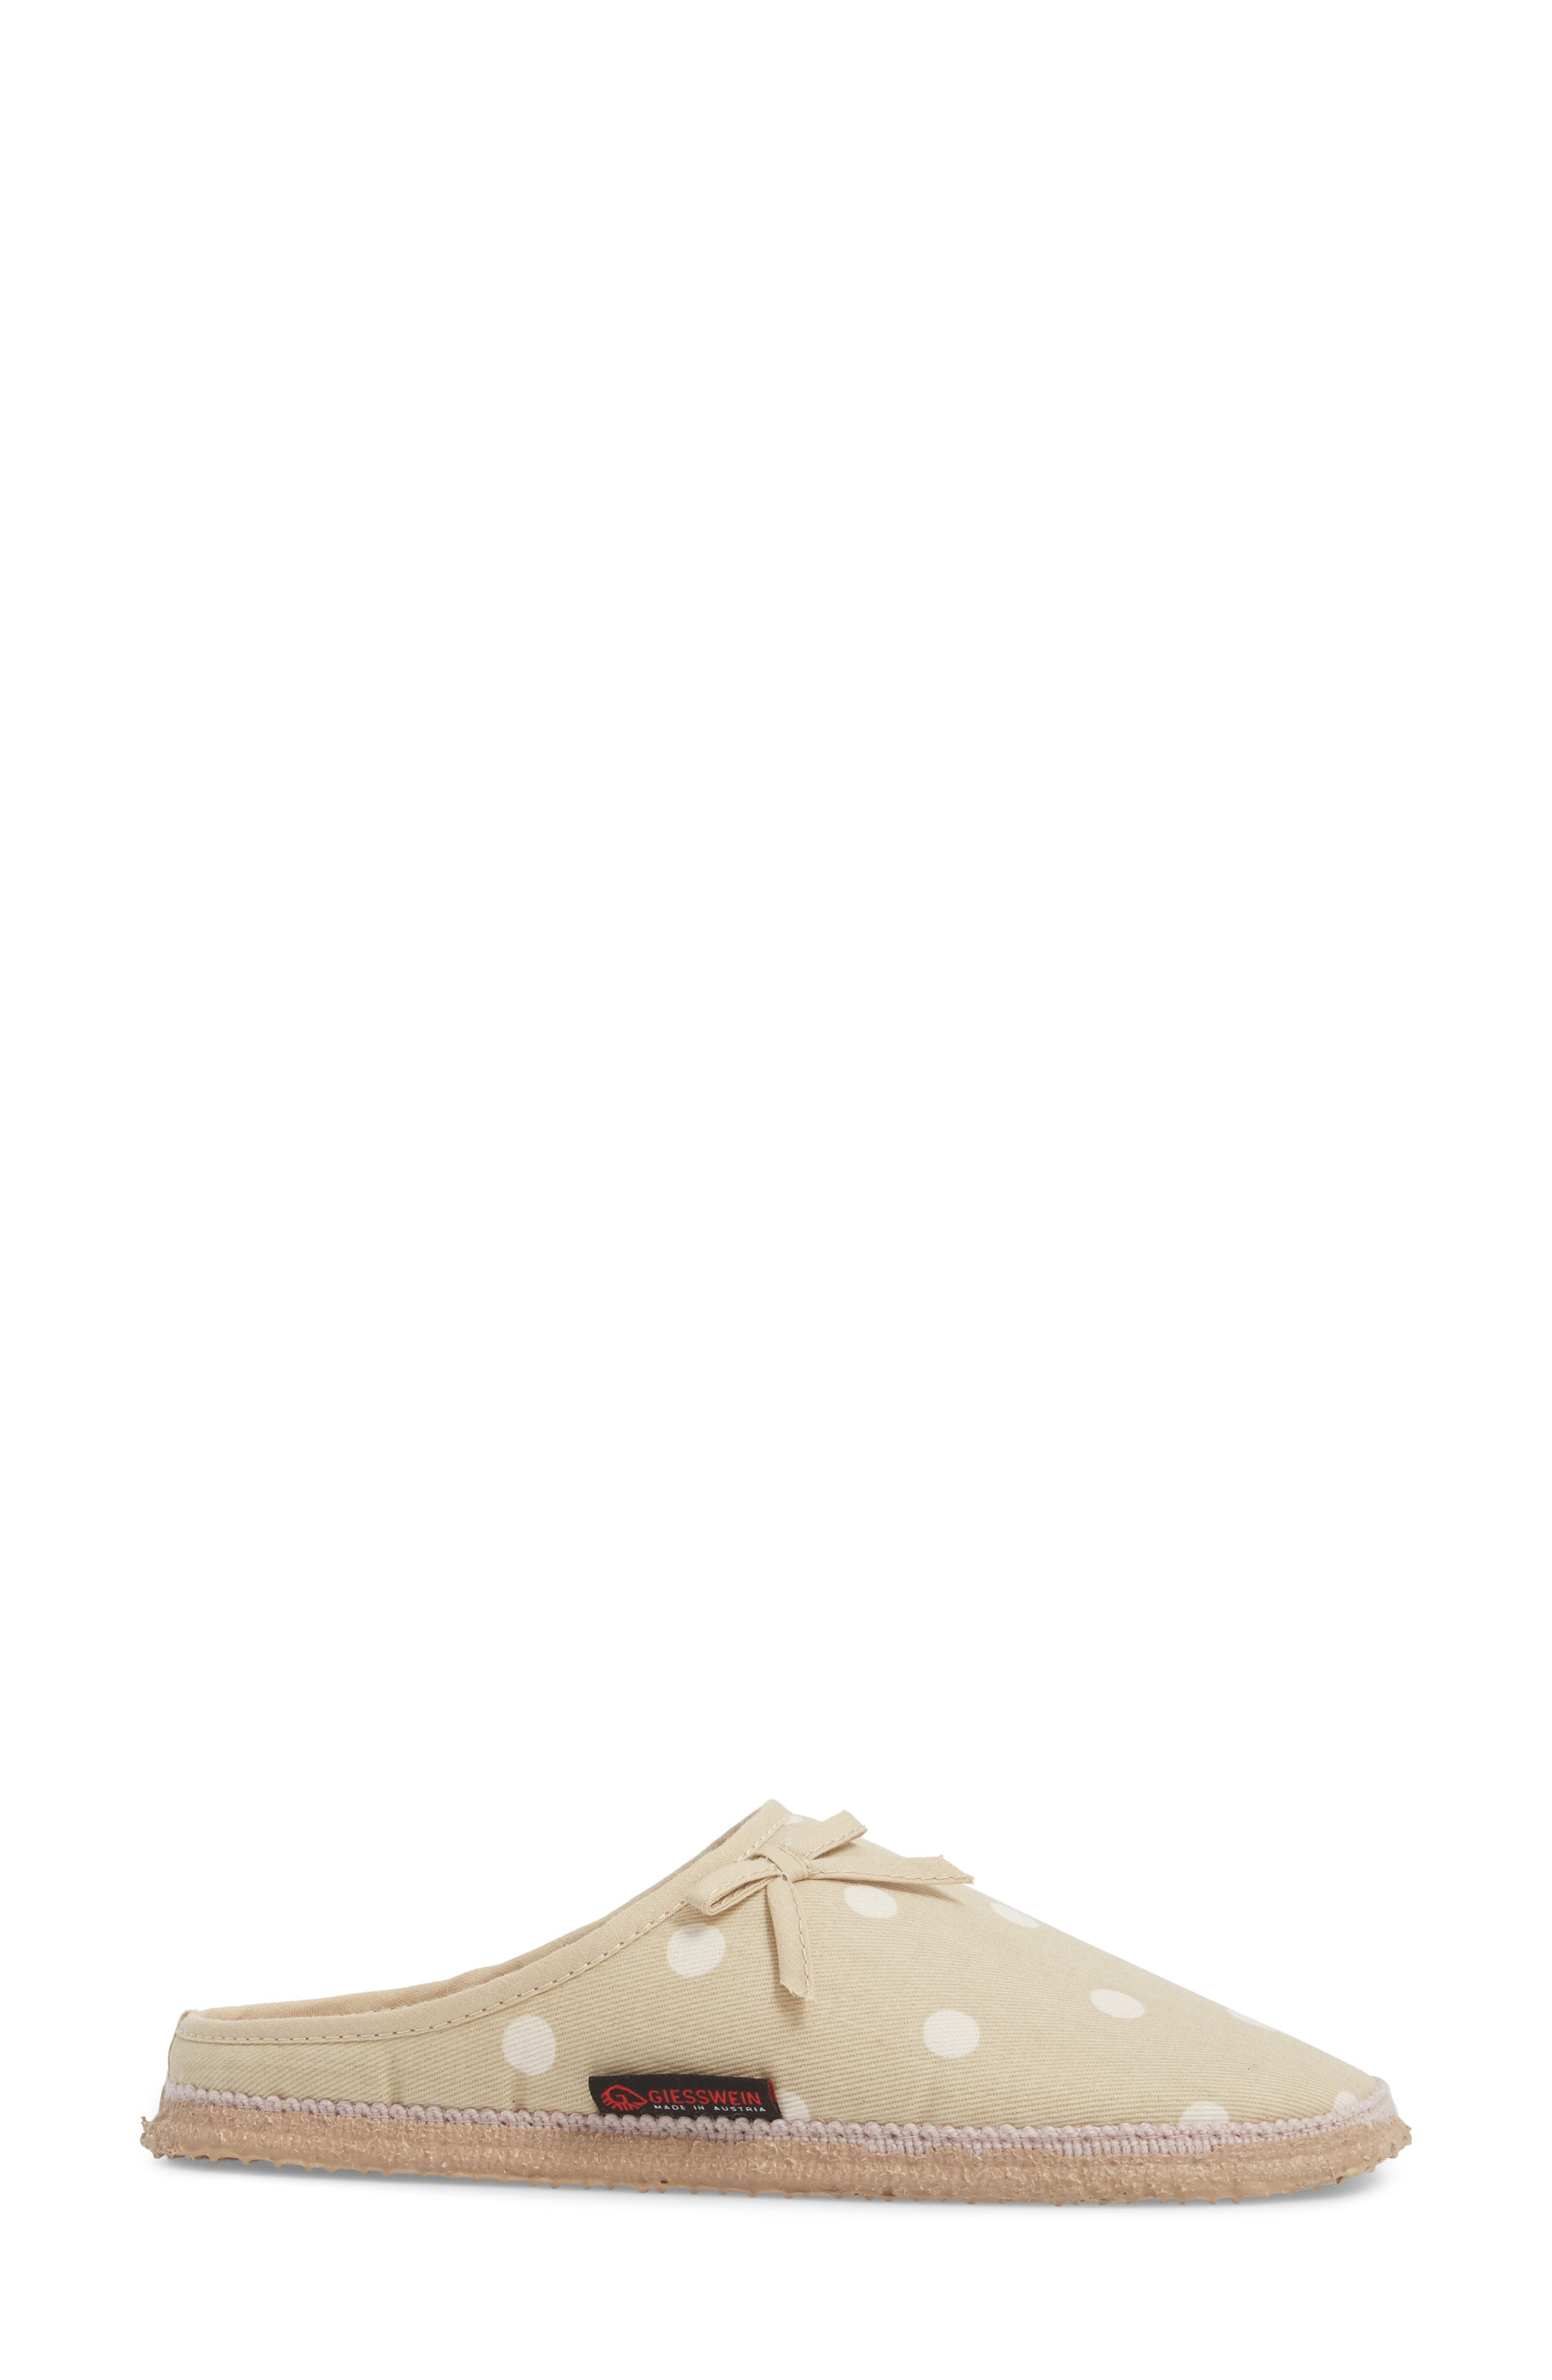 Meadow Slipper,                             Alternate thumbnail 3, color,                             Natural Fabric